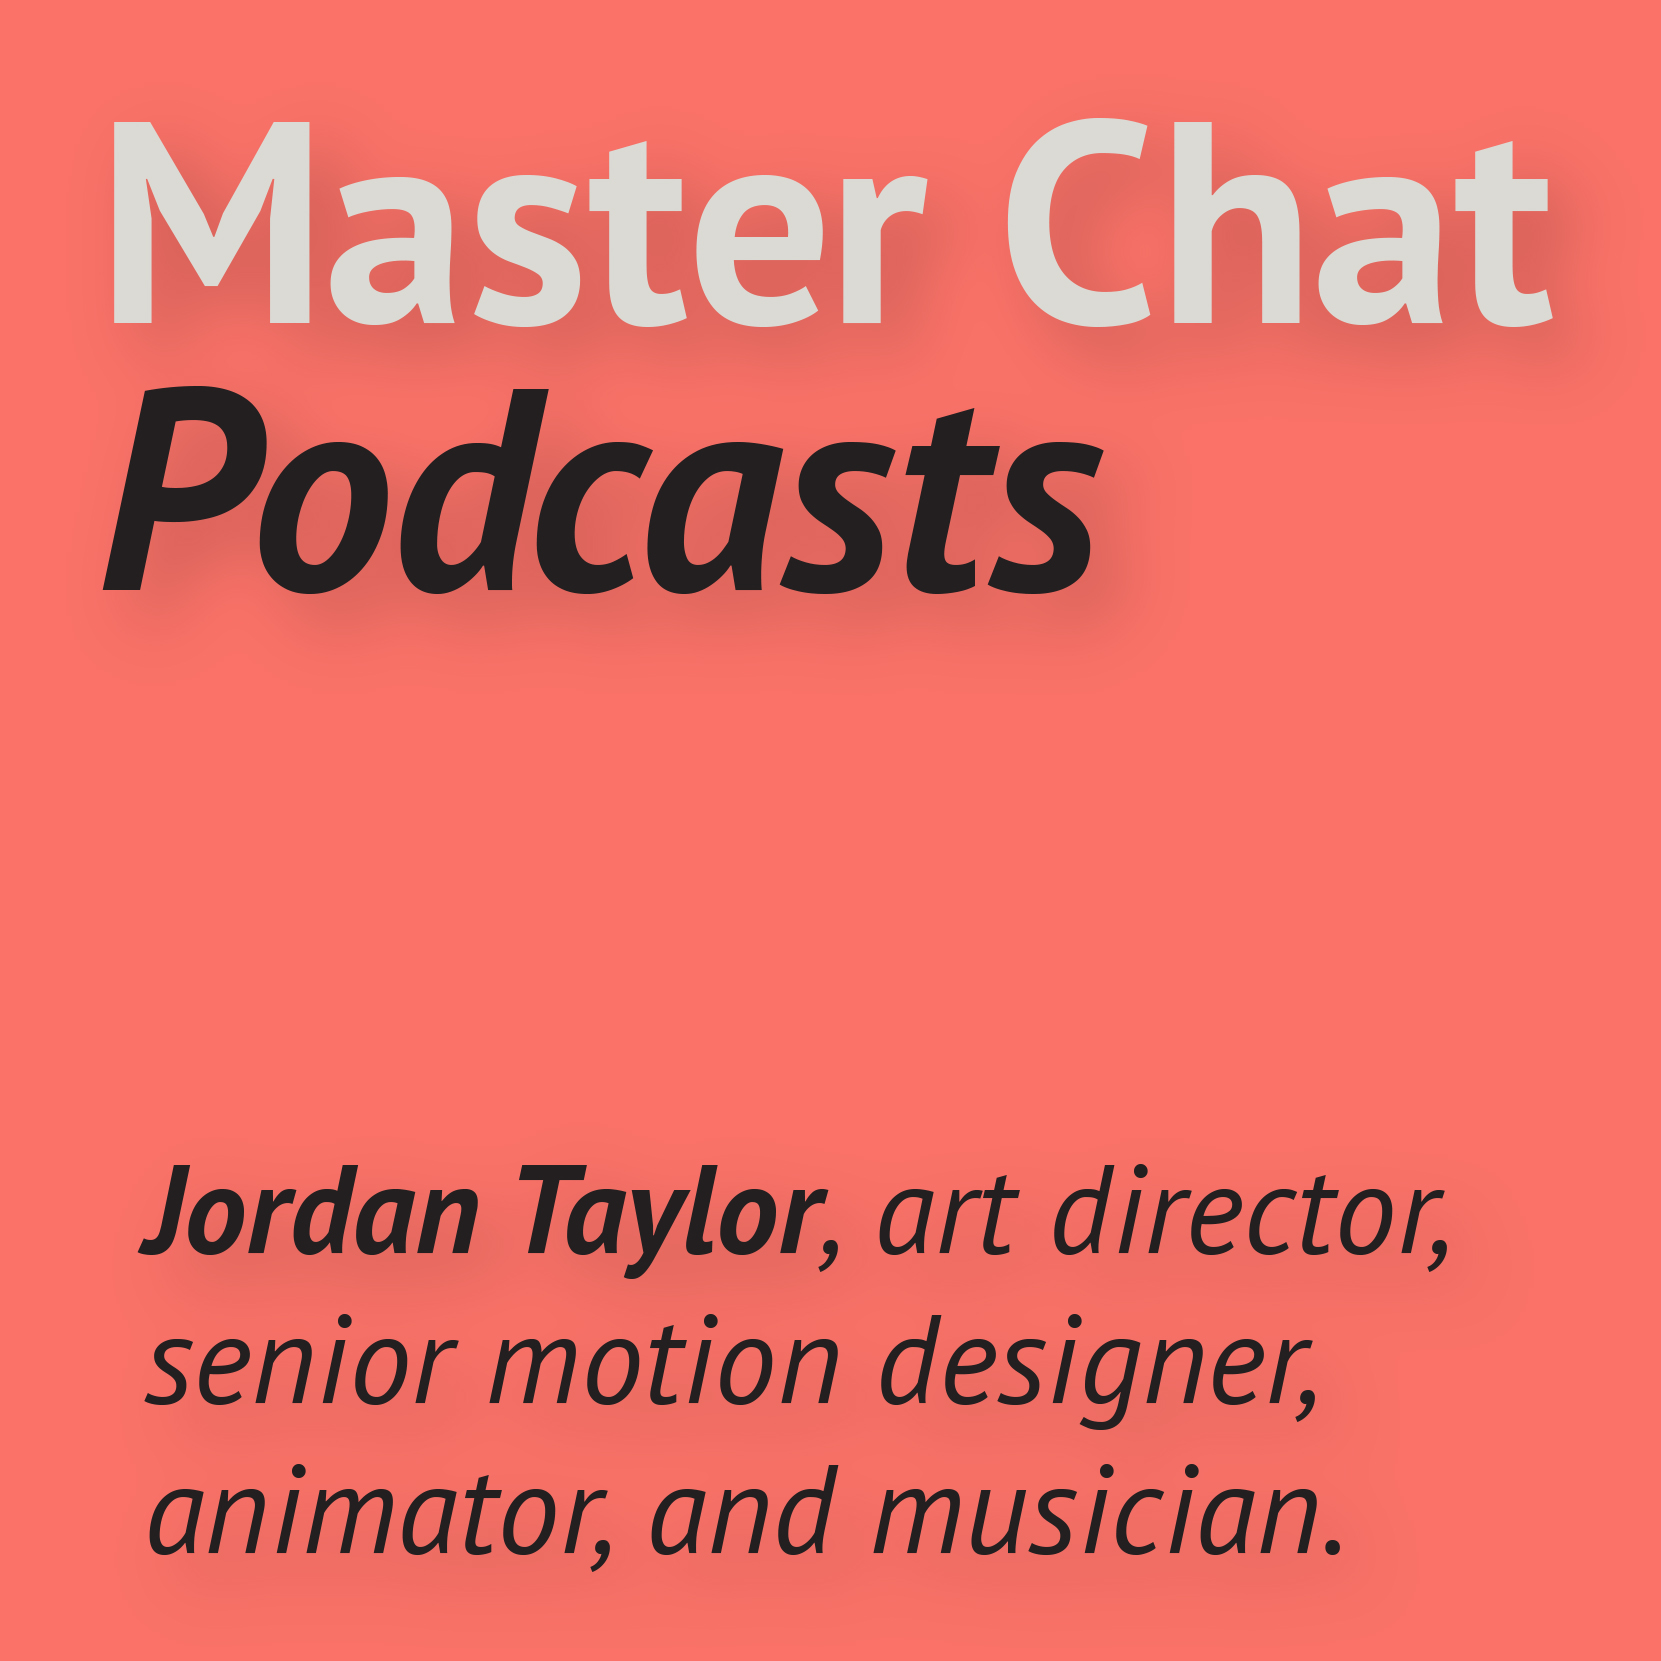 Master Chat Podcasts with Jordan Taylor